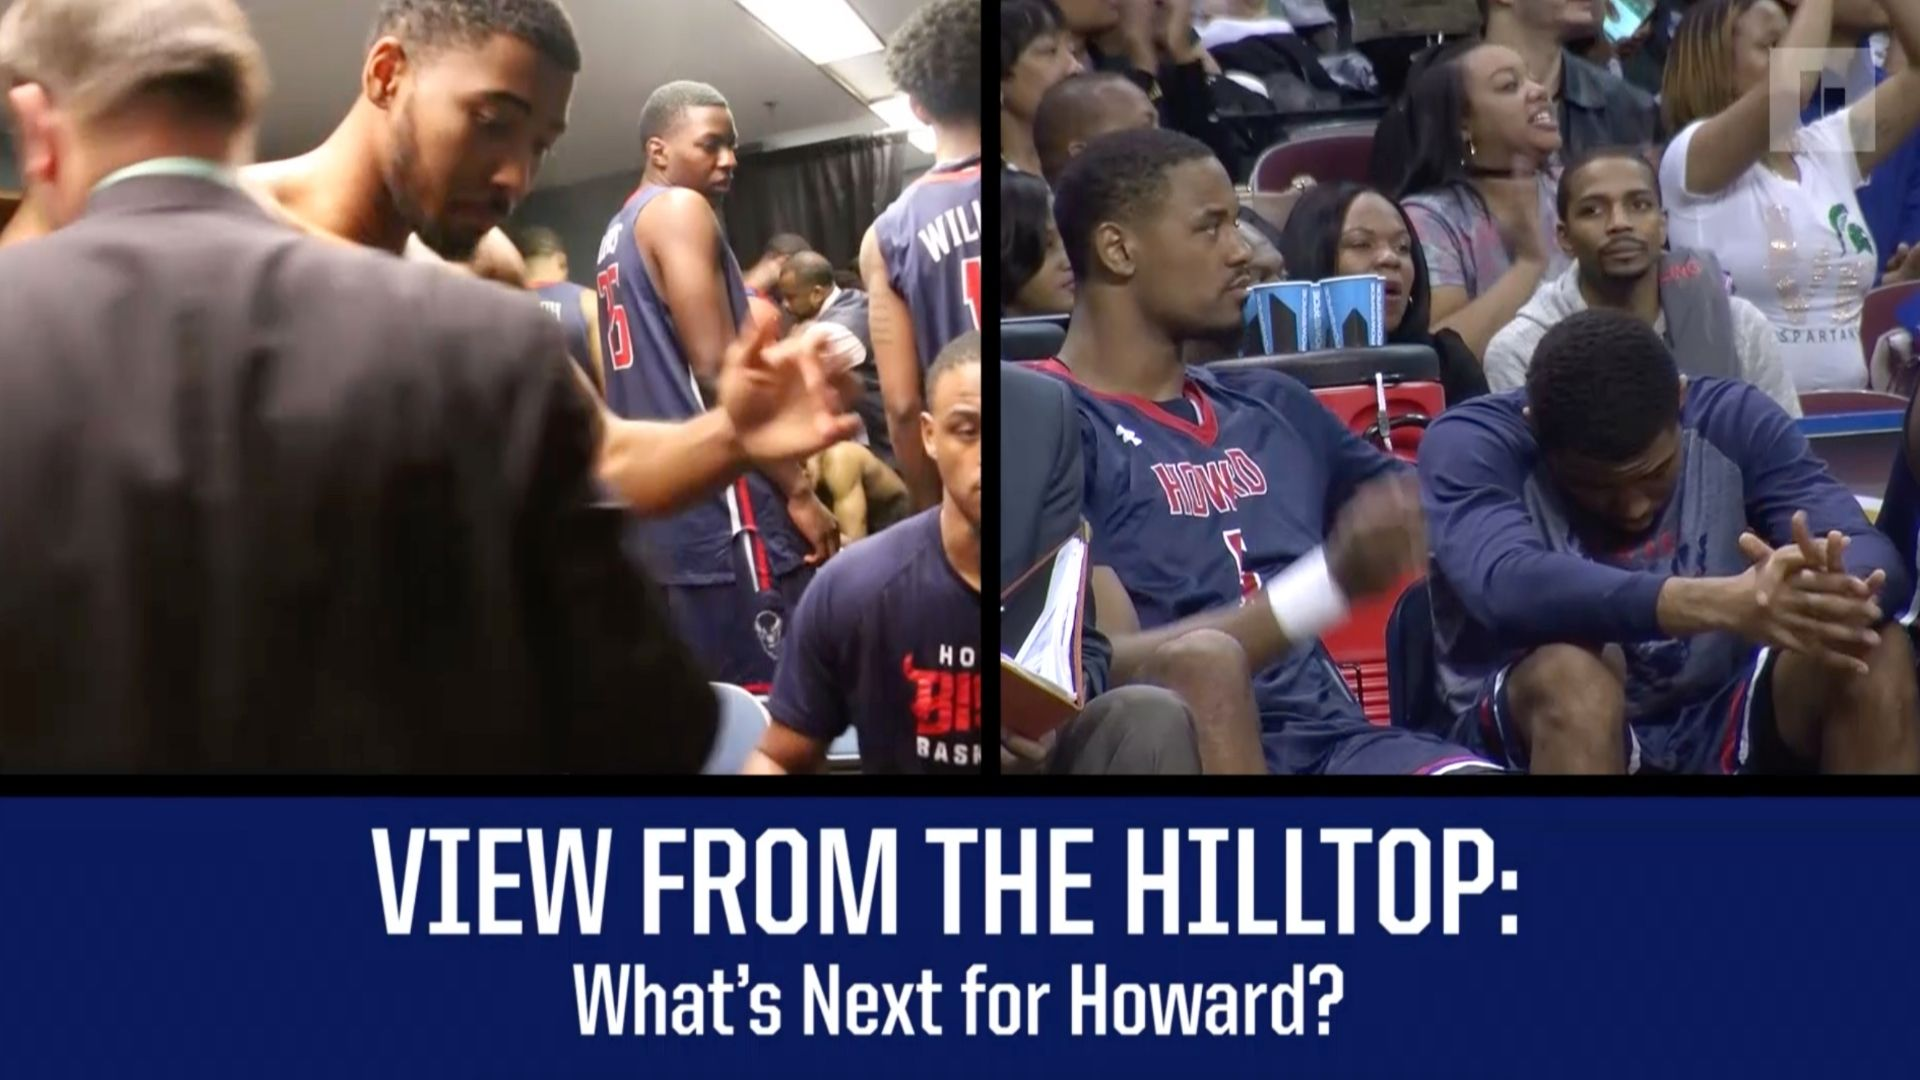 View from the Hilltop: What's next for Howard?